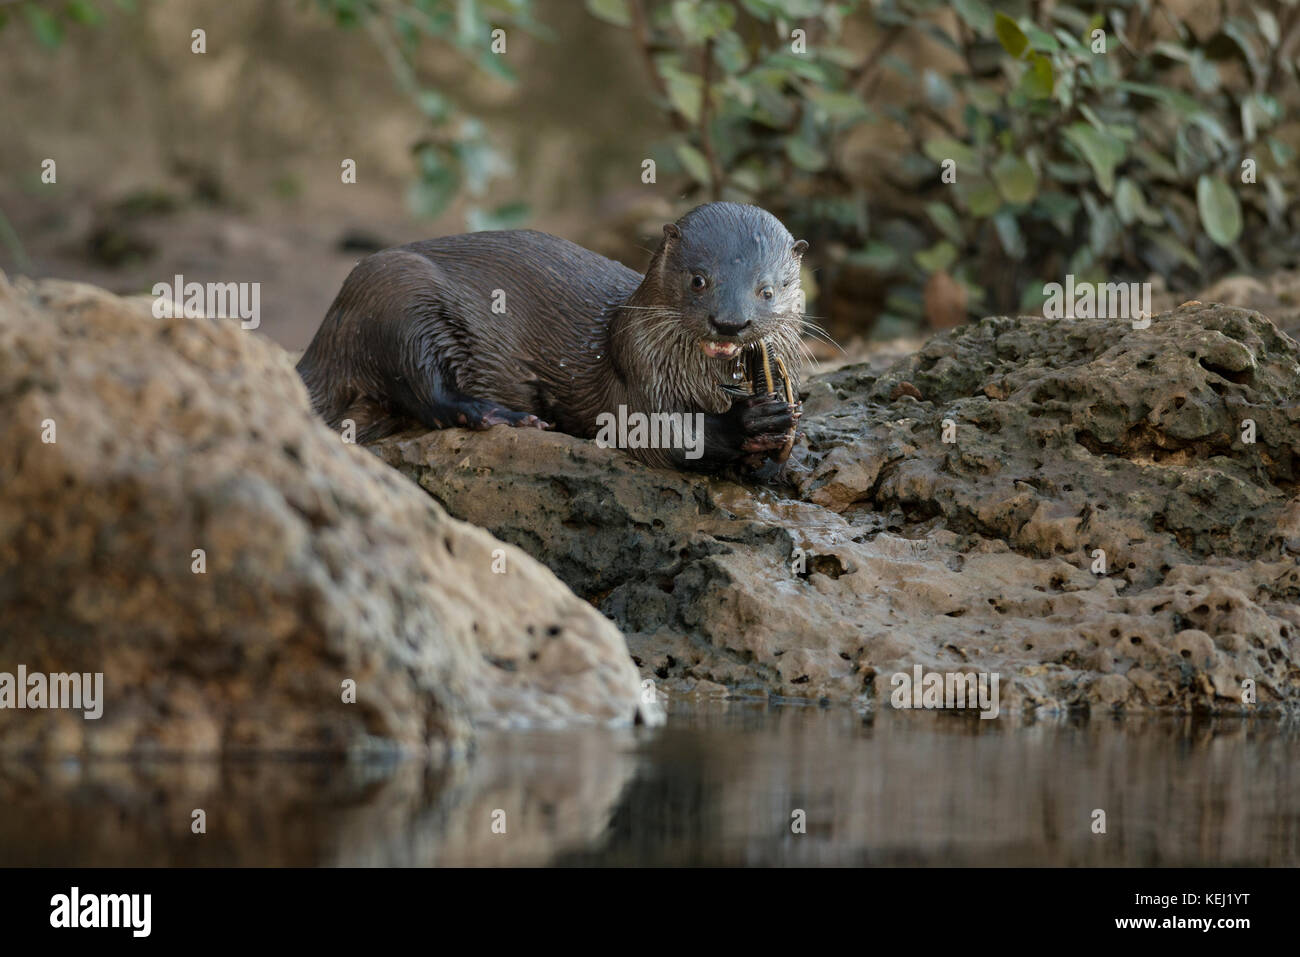 Neotropical River Otter eating a catfish in South Pantanal, Brazil Stock Photo